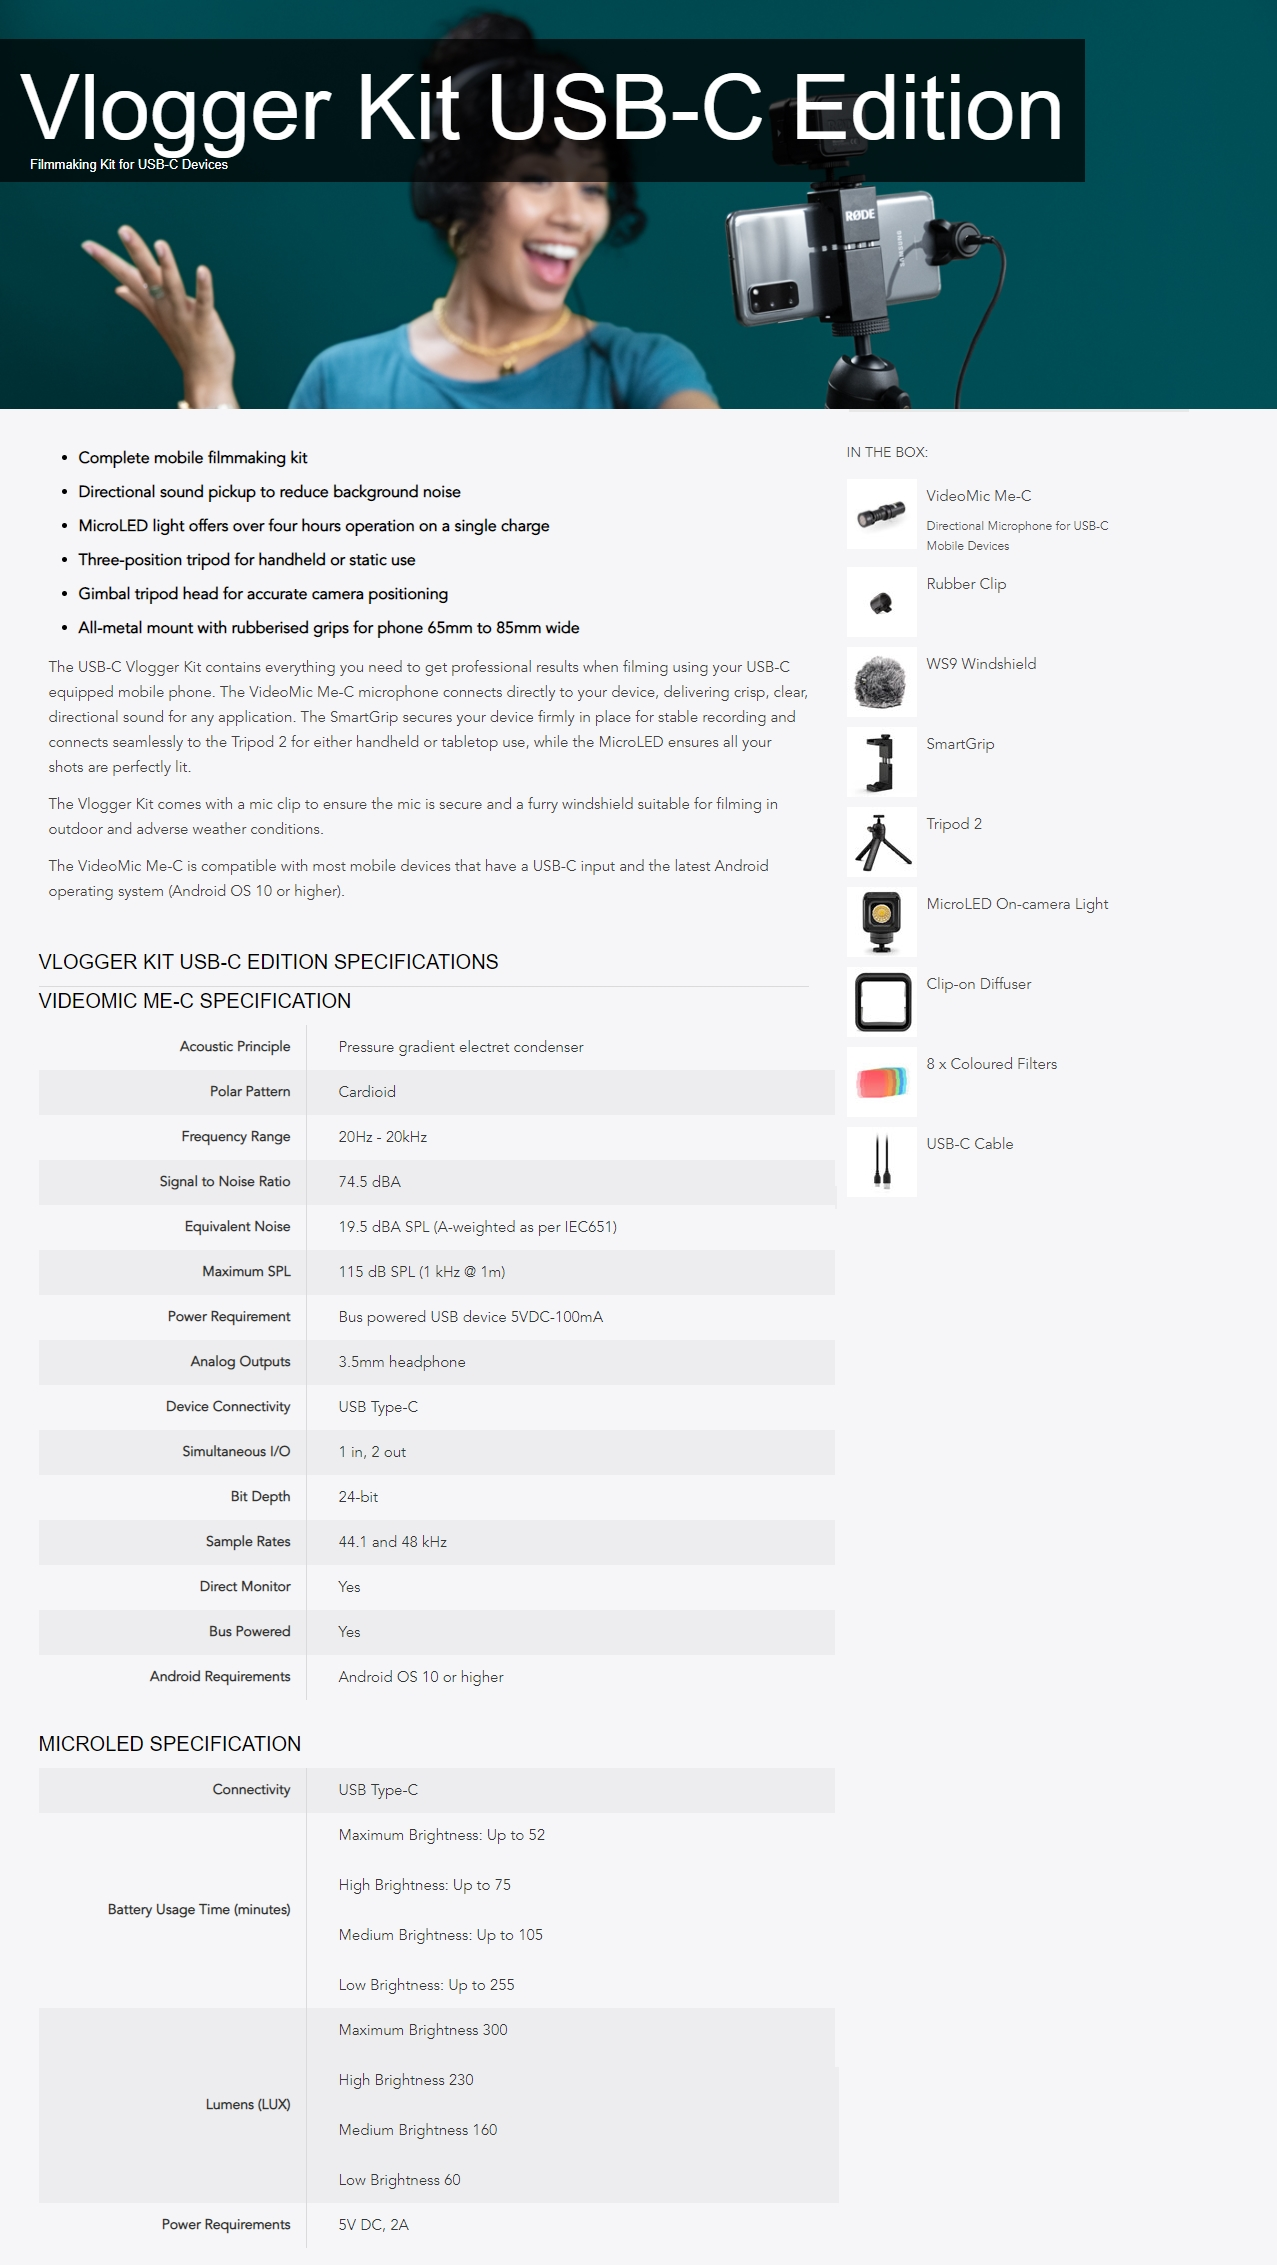 A large marketing image providing additional information about the product RODE Vlogger Kit USB-C Edition - Additional alt info not provided